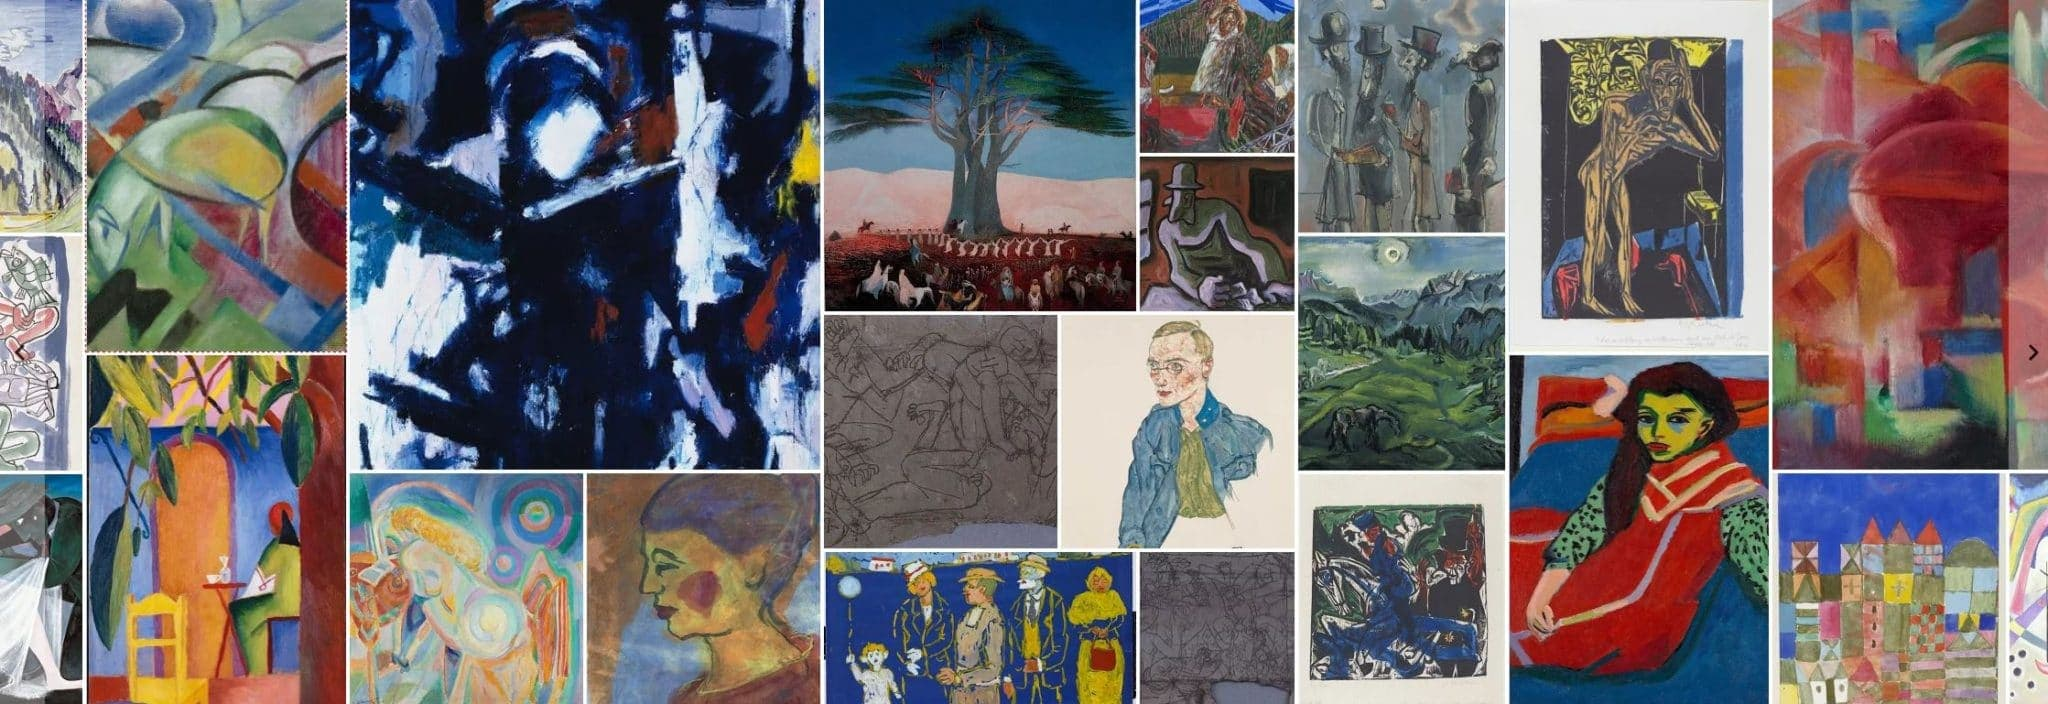 Expressionism - Paintings - 1890-1930